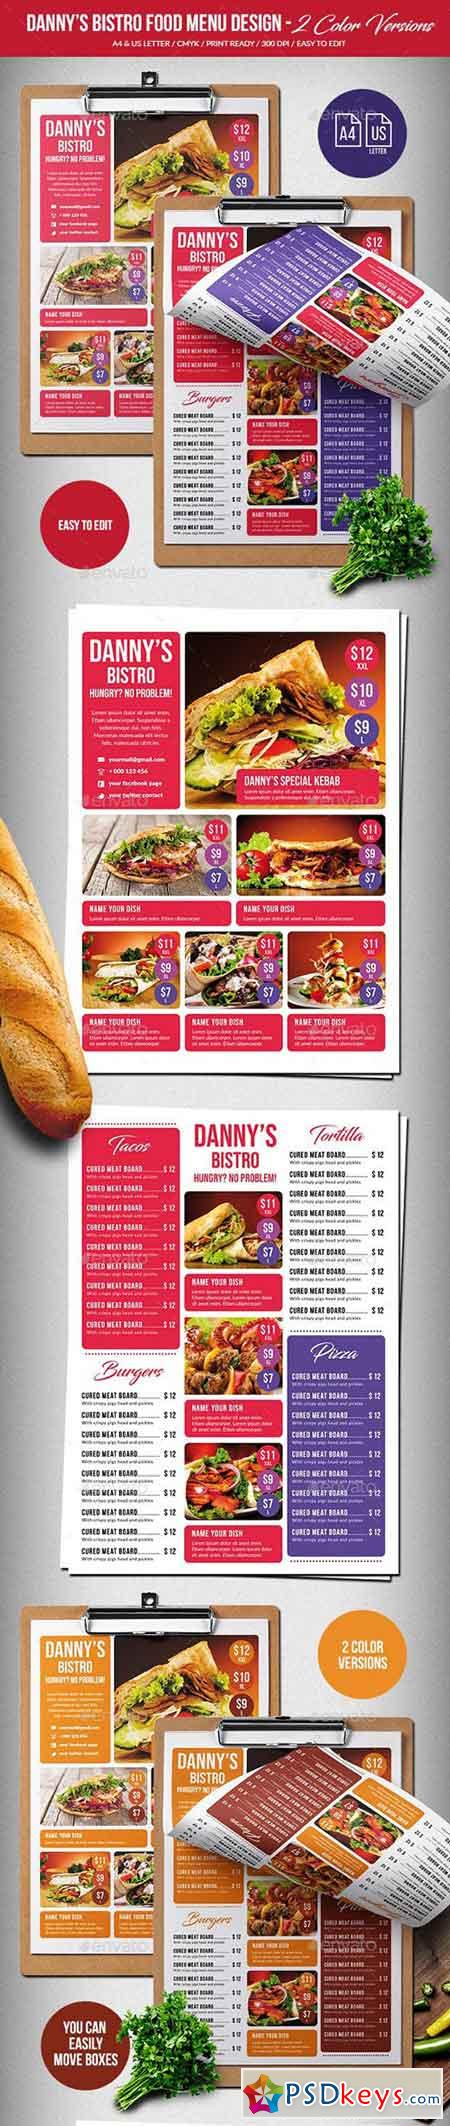 Danny's Bistro Menu Bundle - Single Page & Trifold - A4 & US Letter 20623981